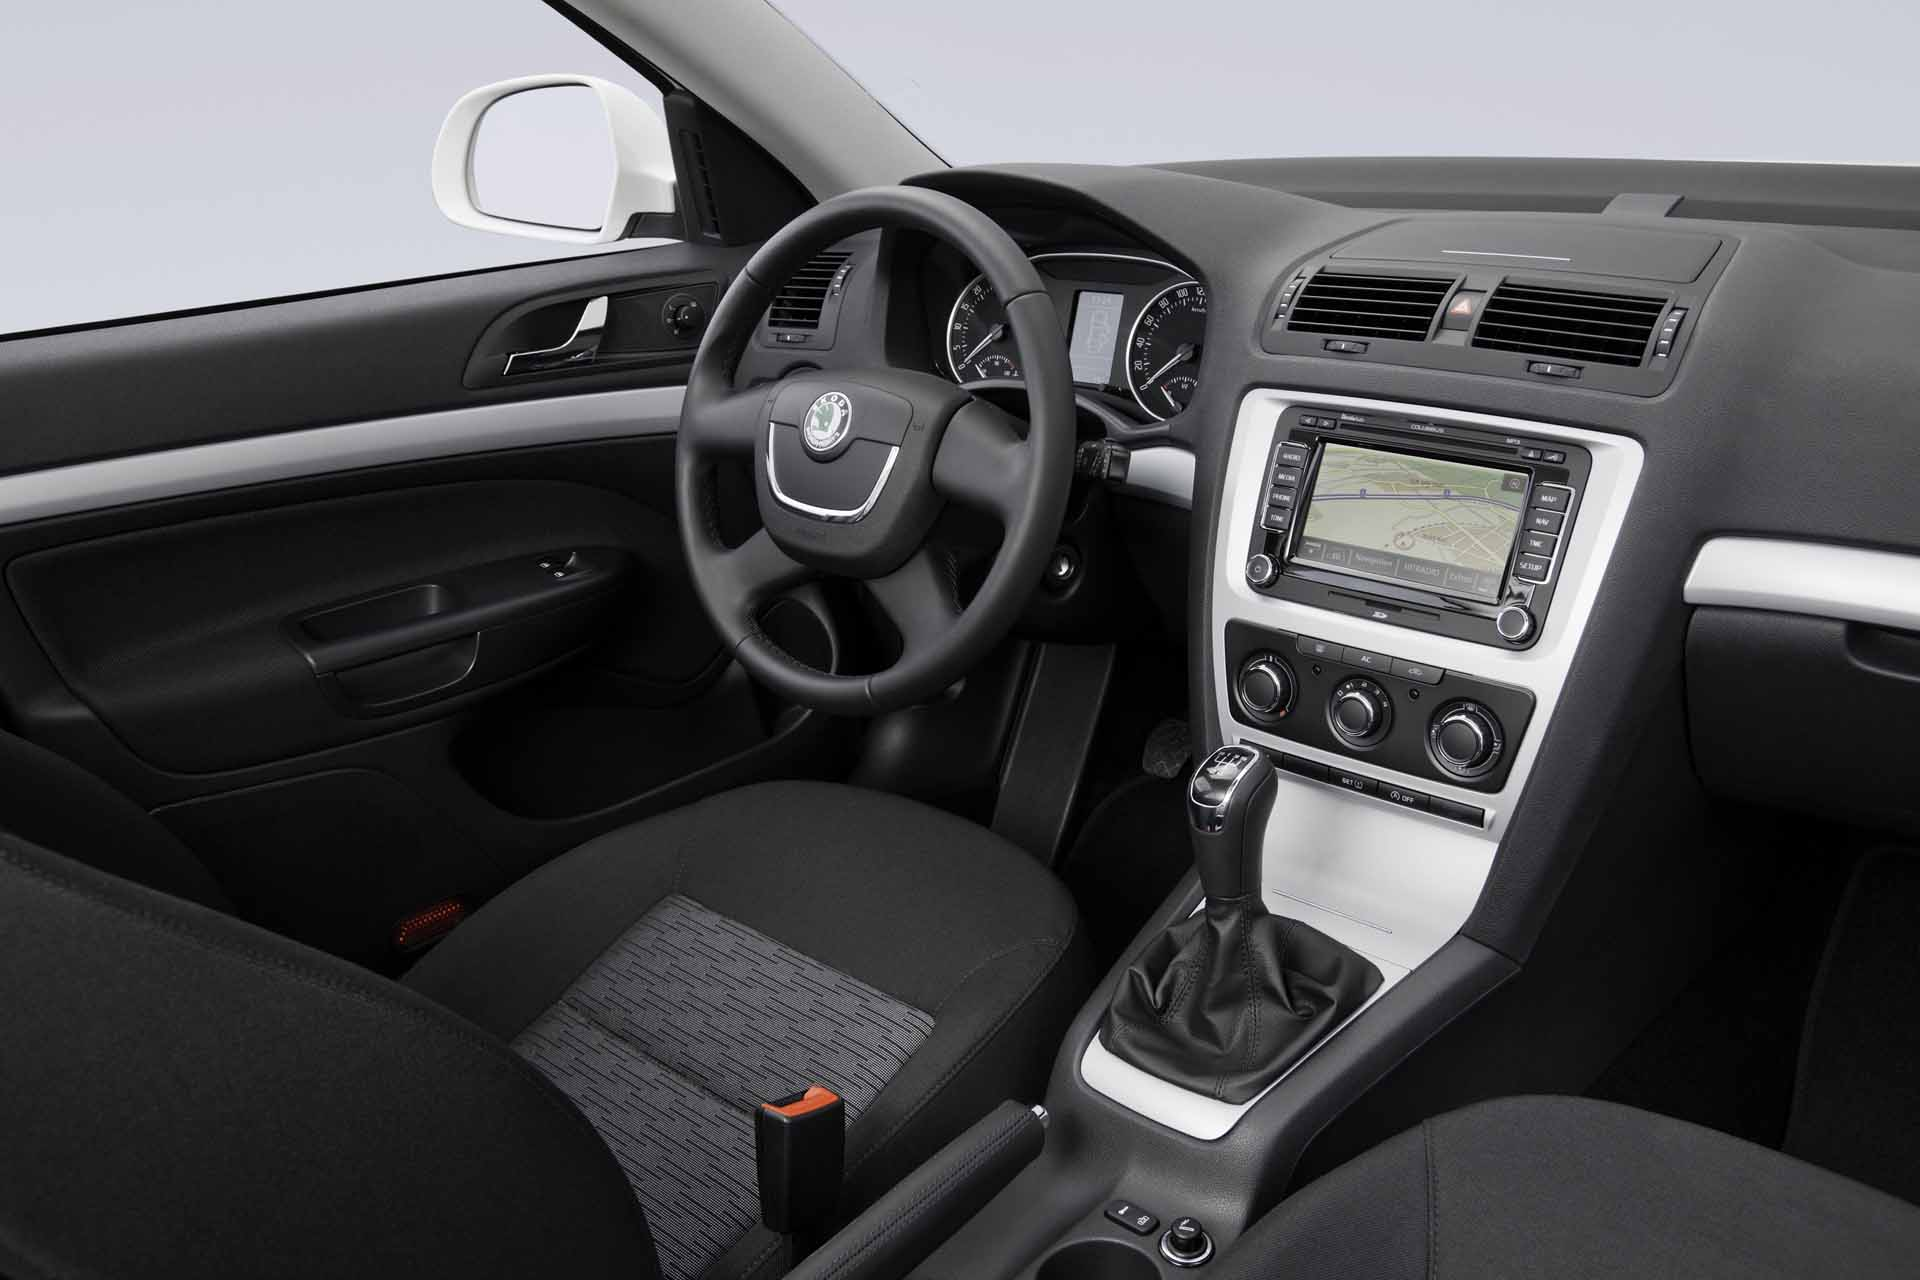 skoda octavia ii 2004 2013 gebrauchtwagen kaufberatung. Black Bedroom Furniture Sets. Home Design Ideas